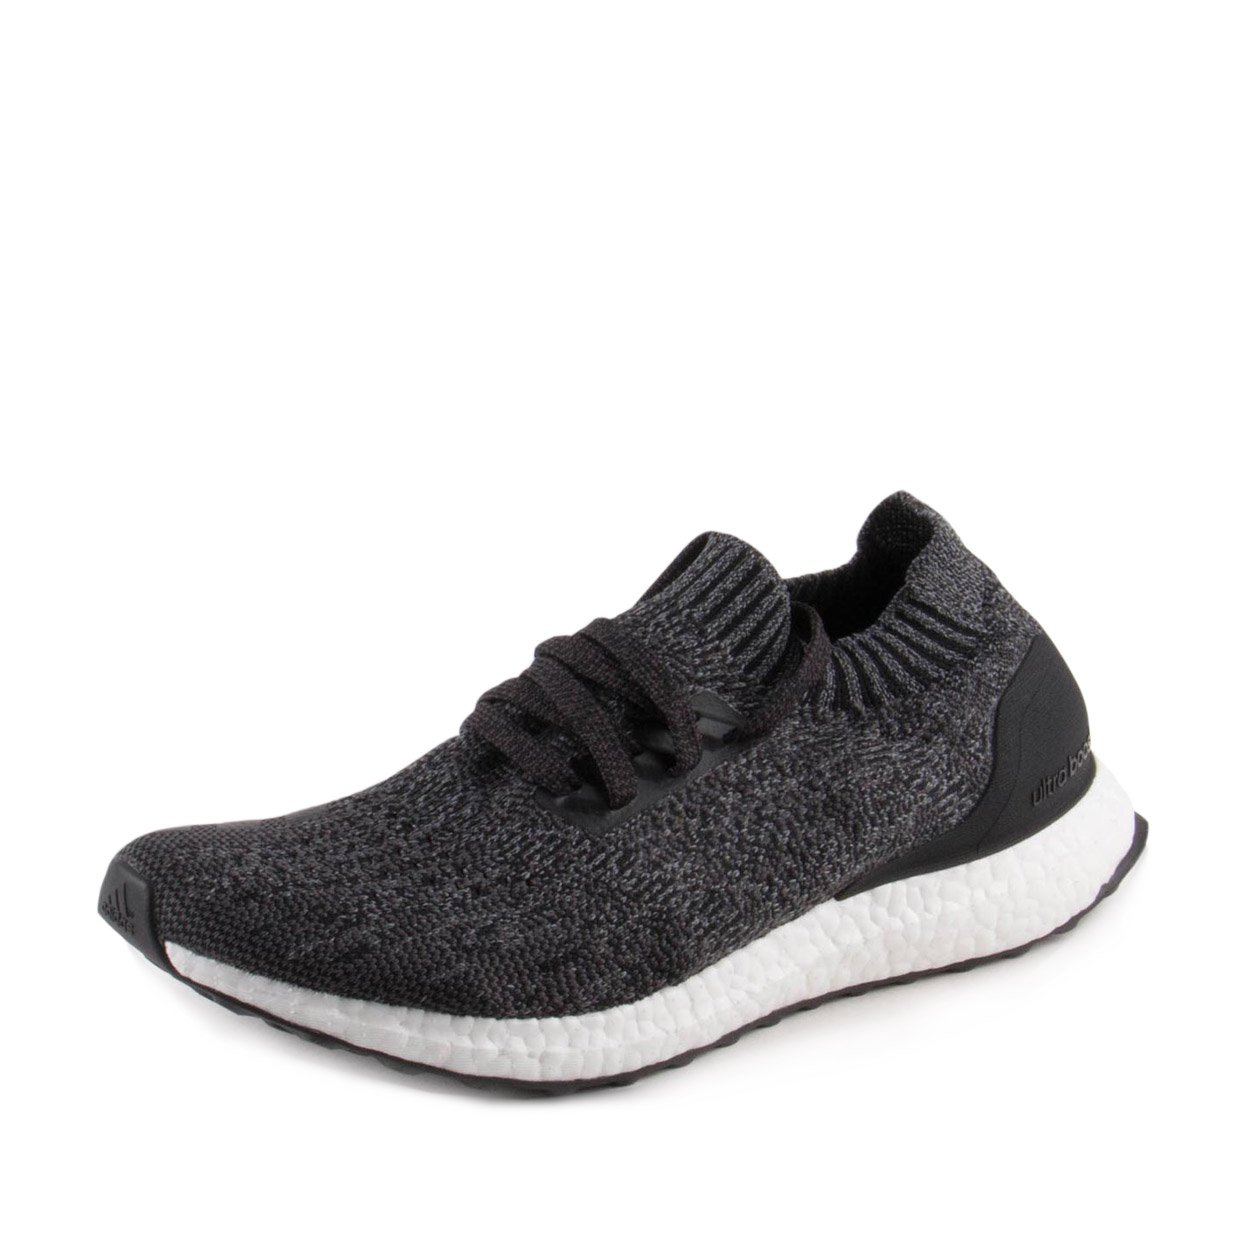 80254af14 Galleon - Adidas Ultra Boost Uncaged Mens Running Sneakers Core Black Solid  Grey By2551 (12 D(M) US)